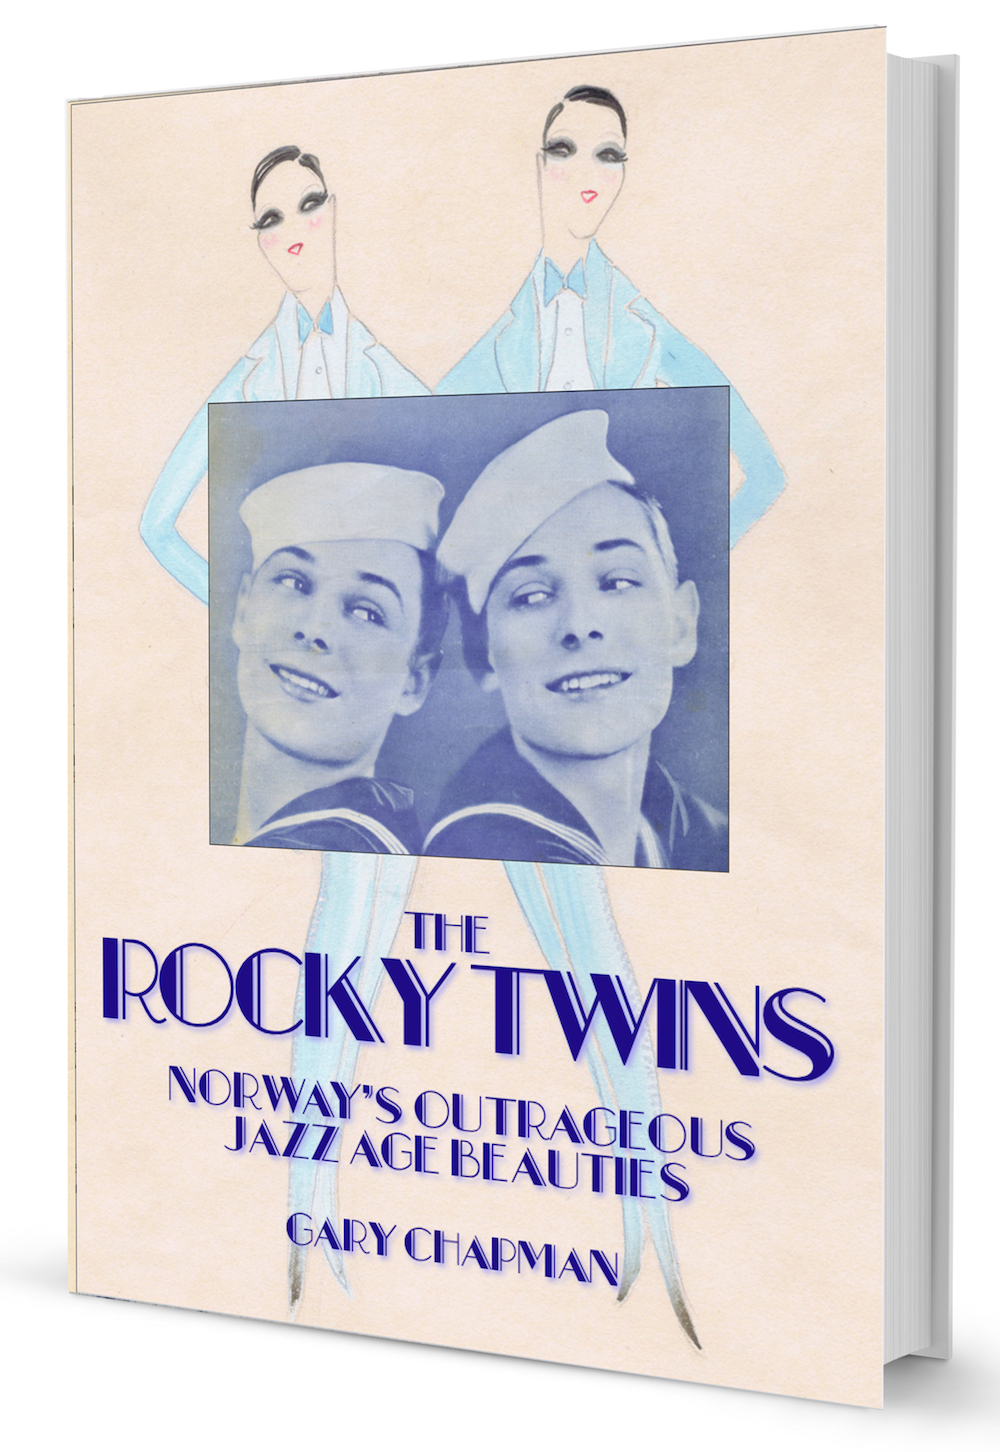 The cover for The Rocky Twins: Norway's Outrageous Jazz Age Beauties